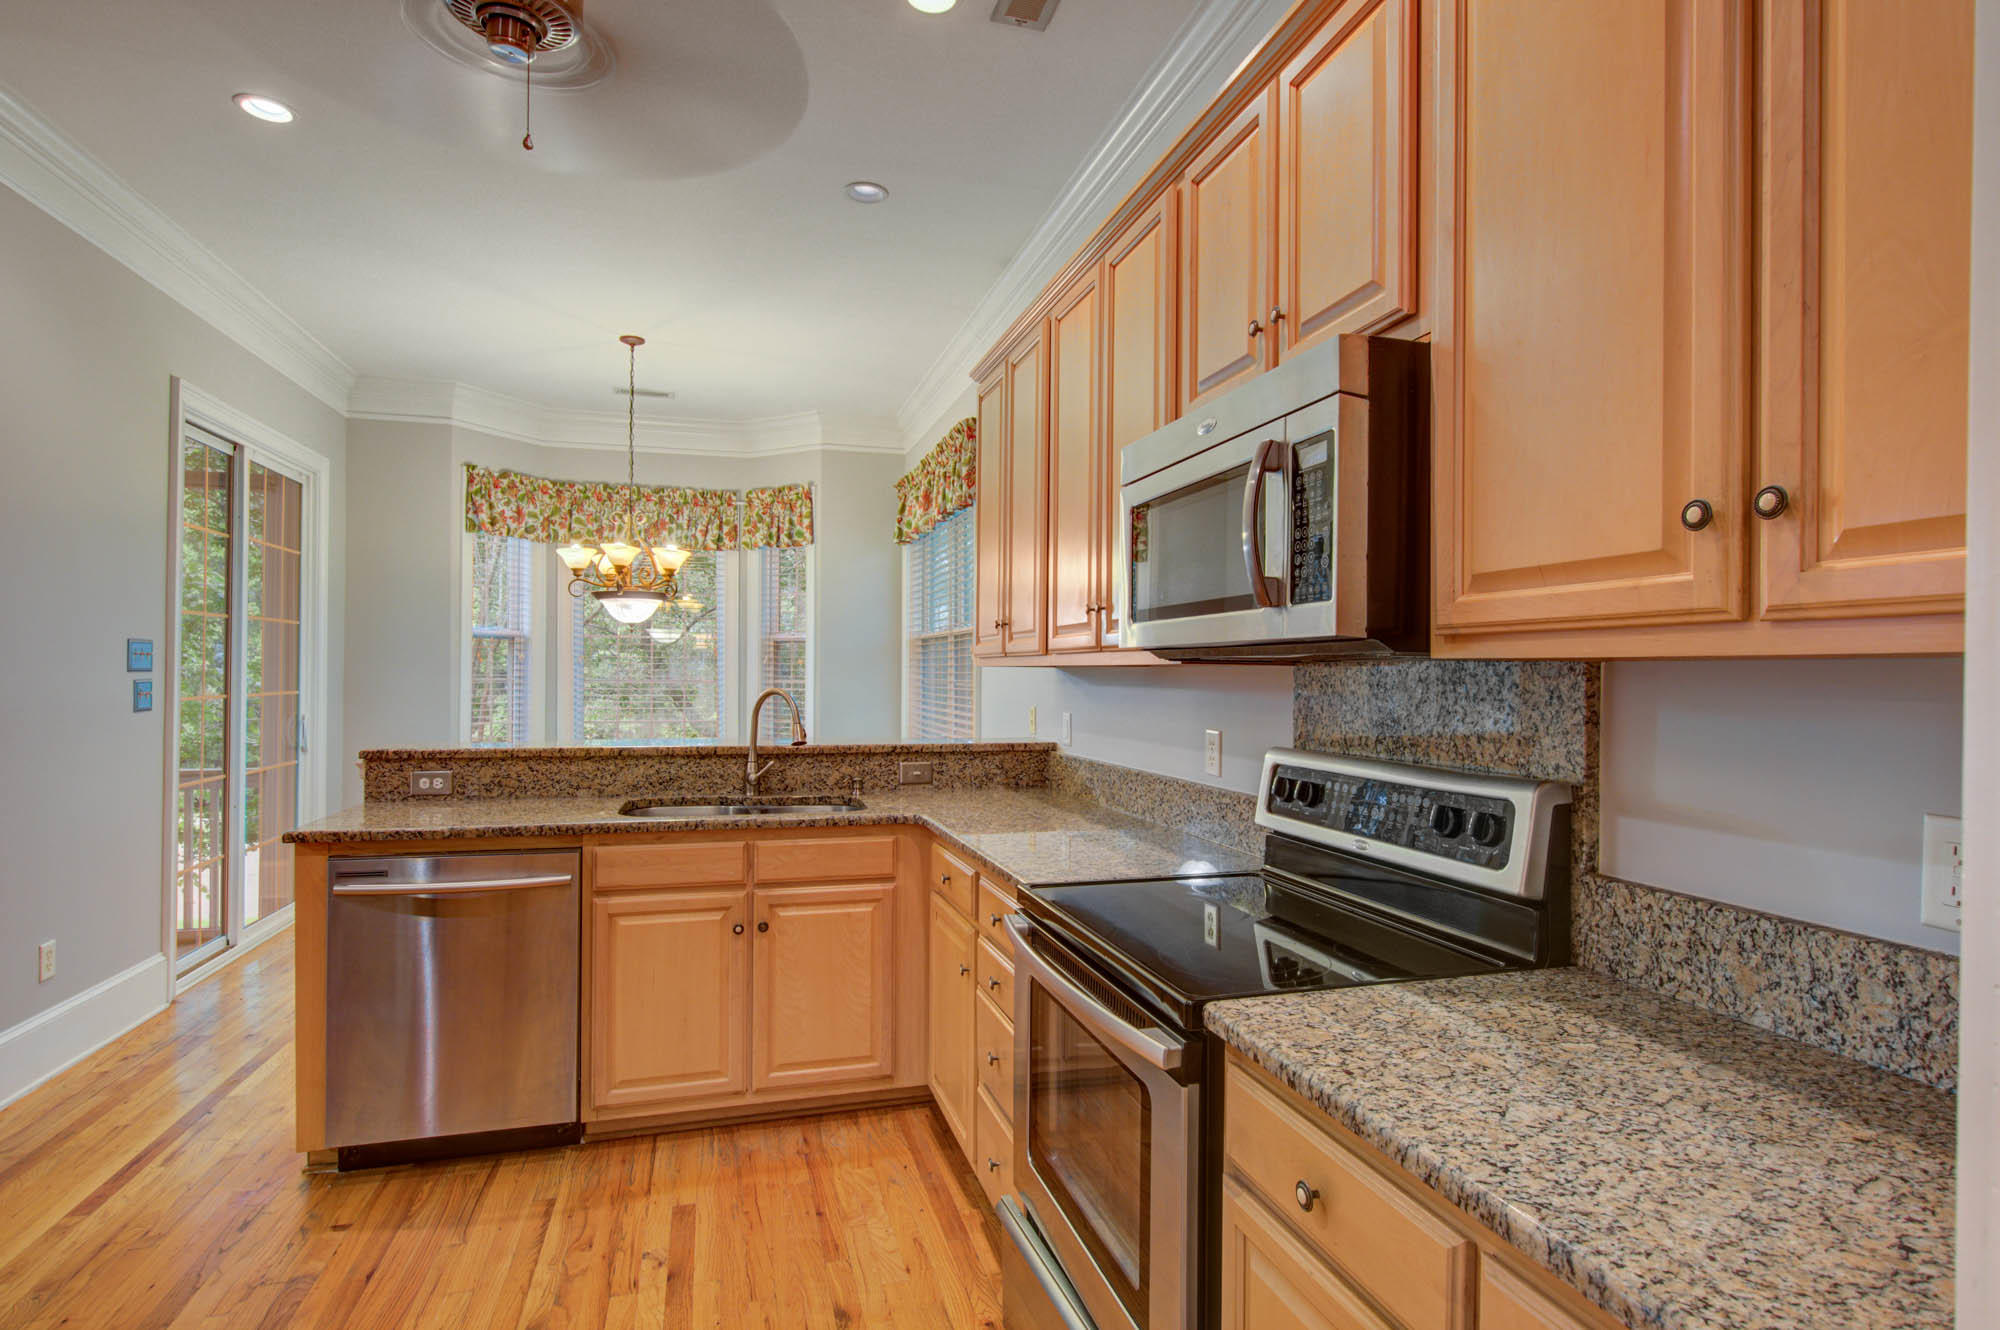 Rivertowne Country Club Homes For Sale - 1741 Rivertowne Country Club, Mount Pleasant, SC - 32